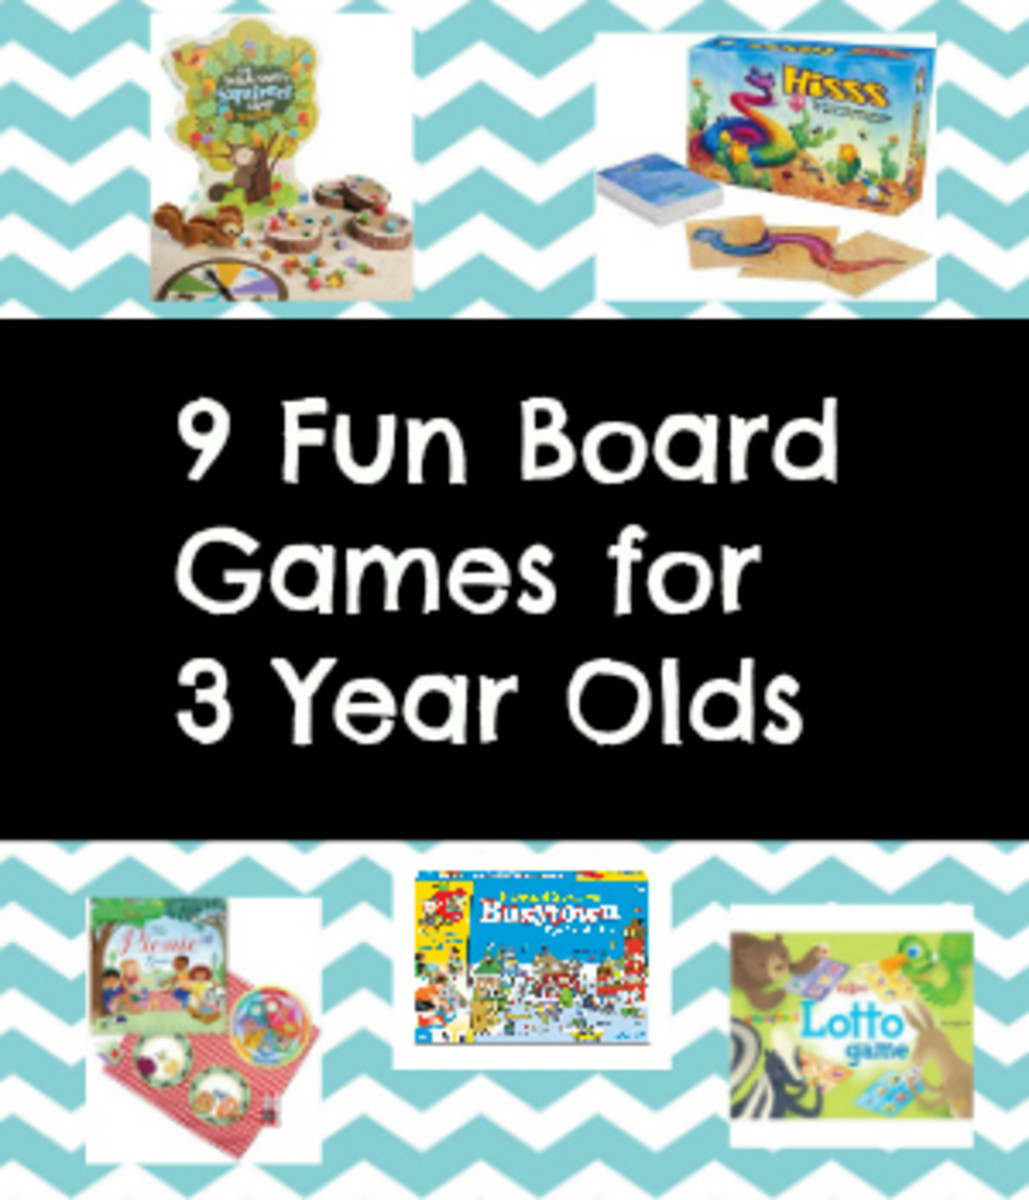 Our Top 10 Family Games | Best Games for Kids Ages 7 & Up